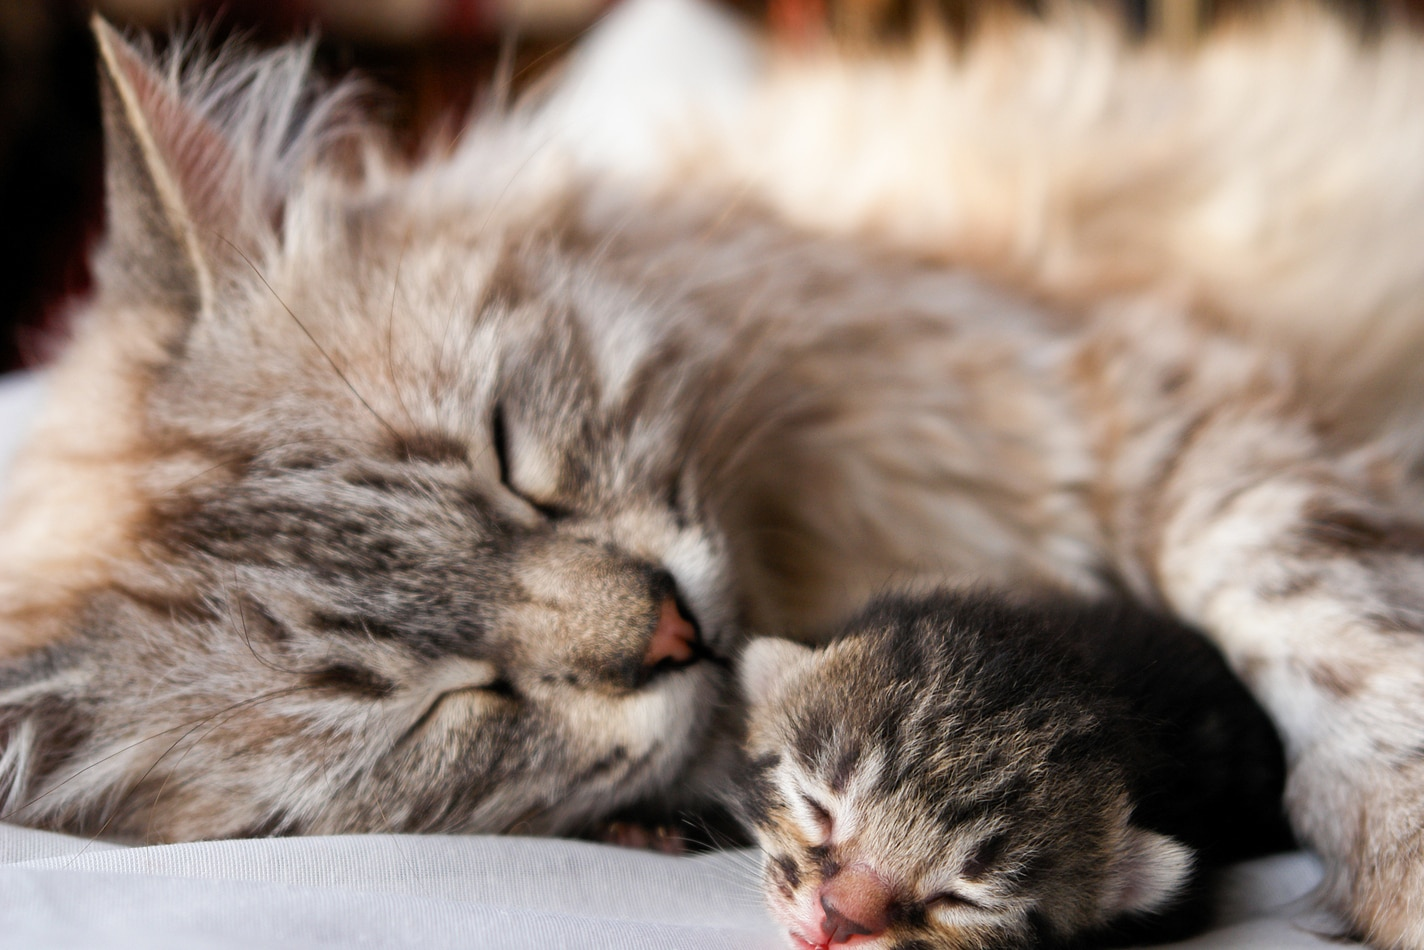 Long-haired mother cat sleeps with her paw around a newborn kitten.